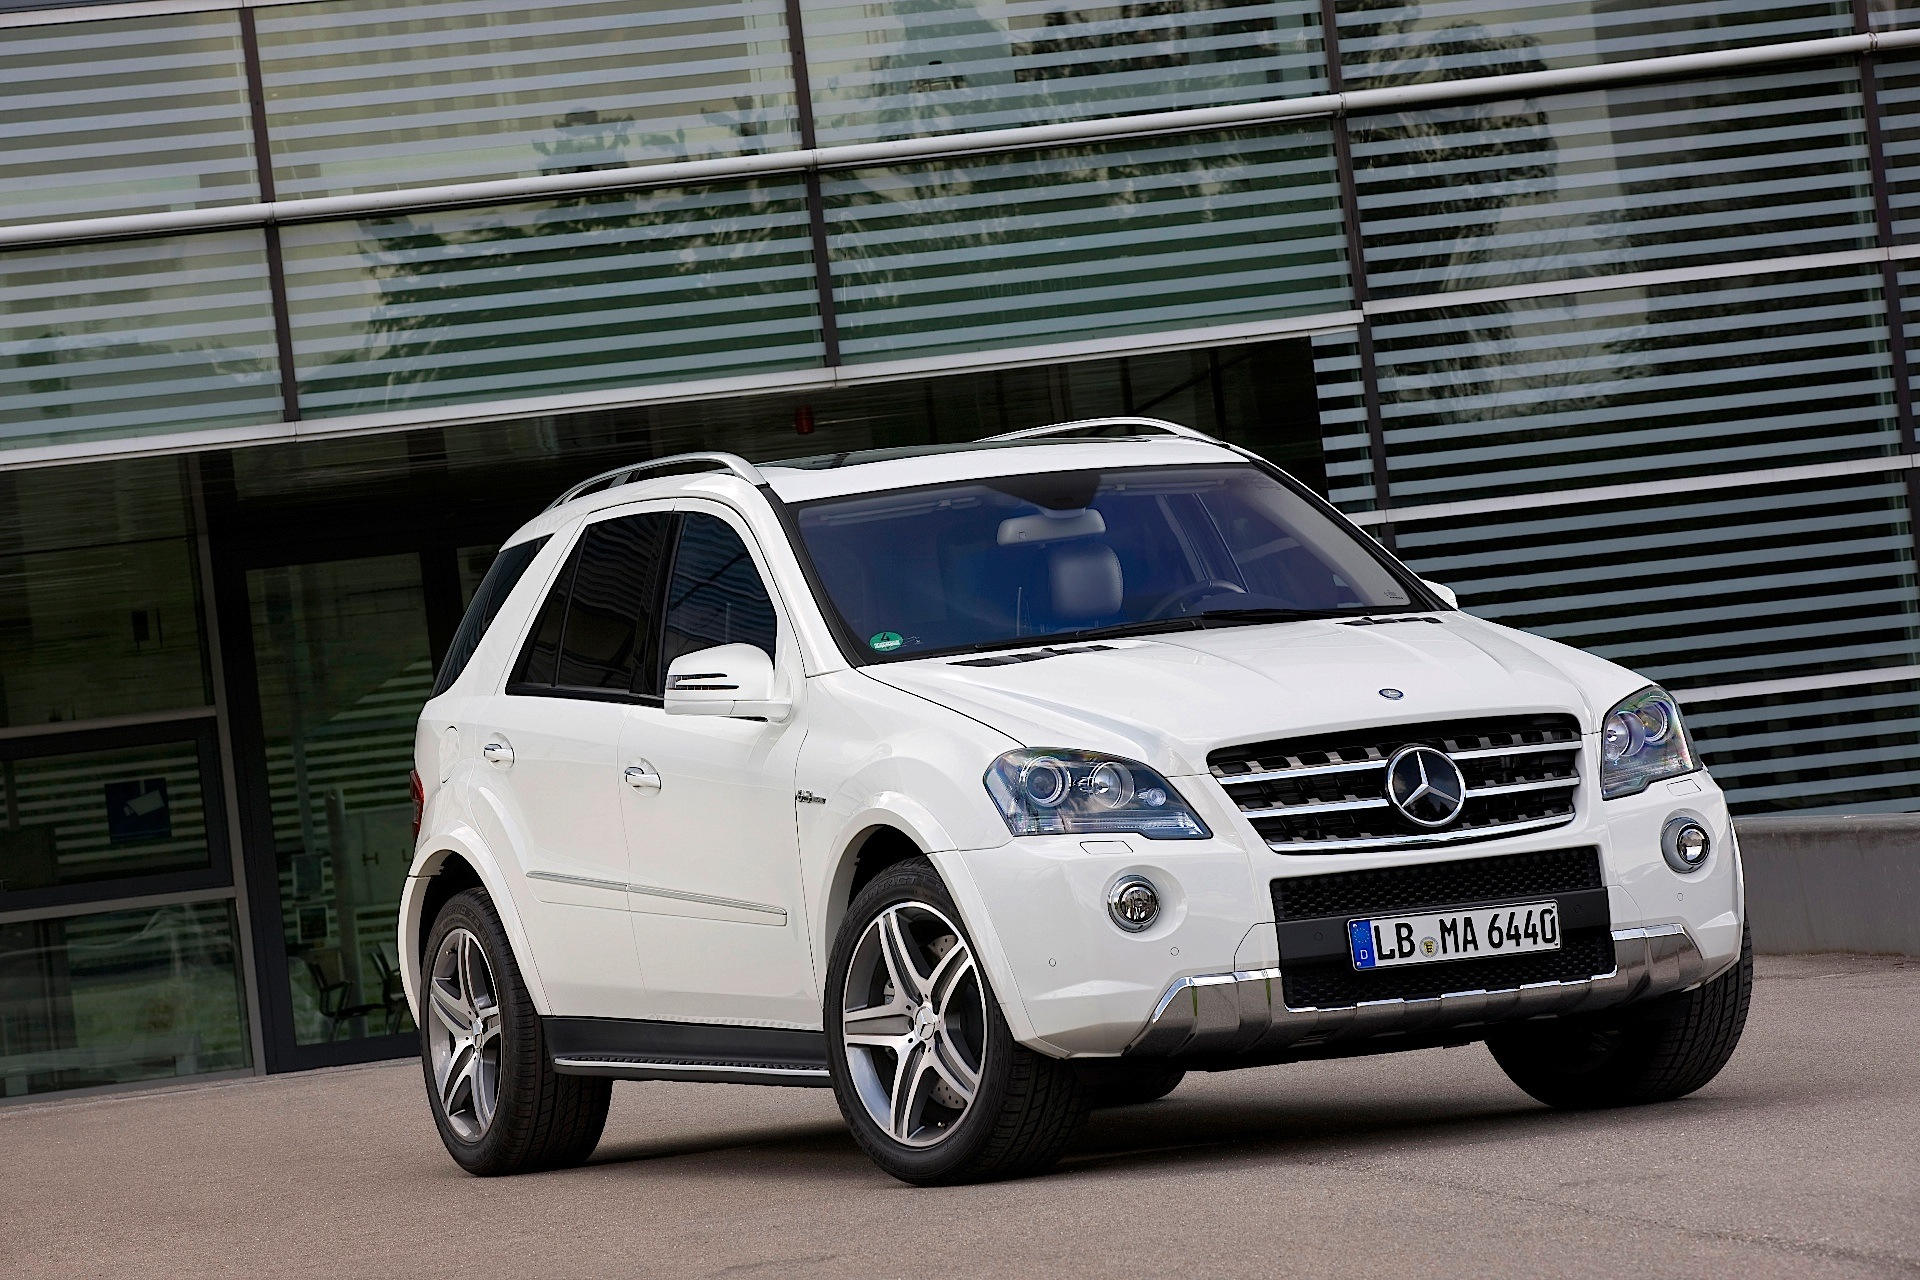 mercedes benz ml klasse w164 specs 2008 2009 2010 2011 autoevolution. Black Bedroom Furniture Sets. Home Design Ideas